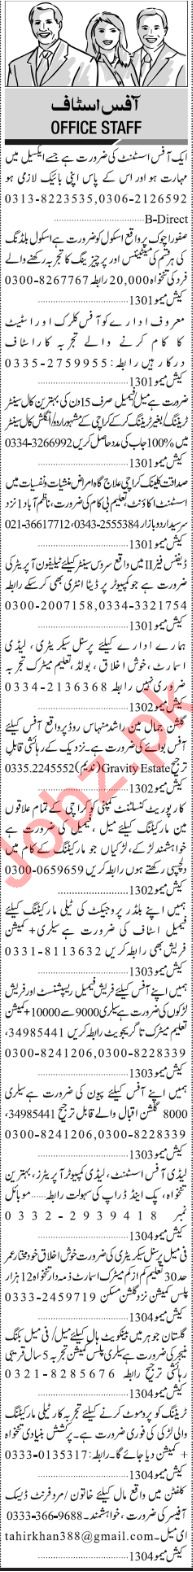 Jang Sunday Classified Ads 2nd Feb 2019 for Office Staff